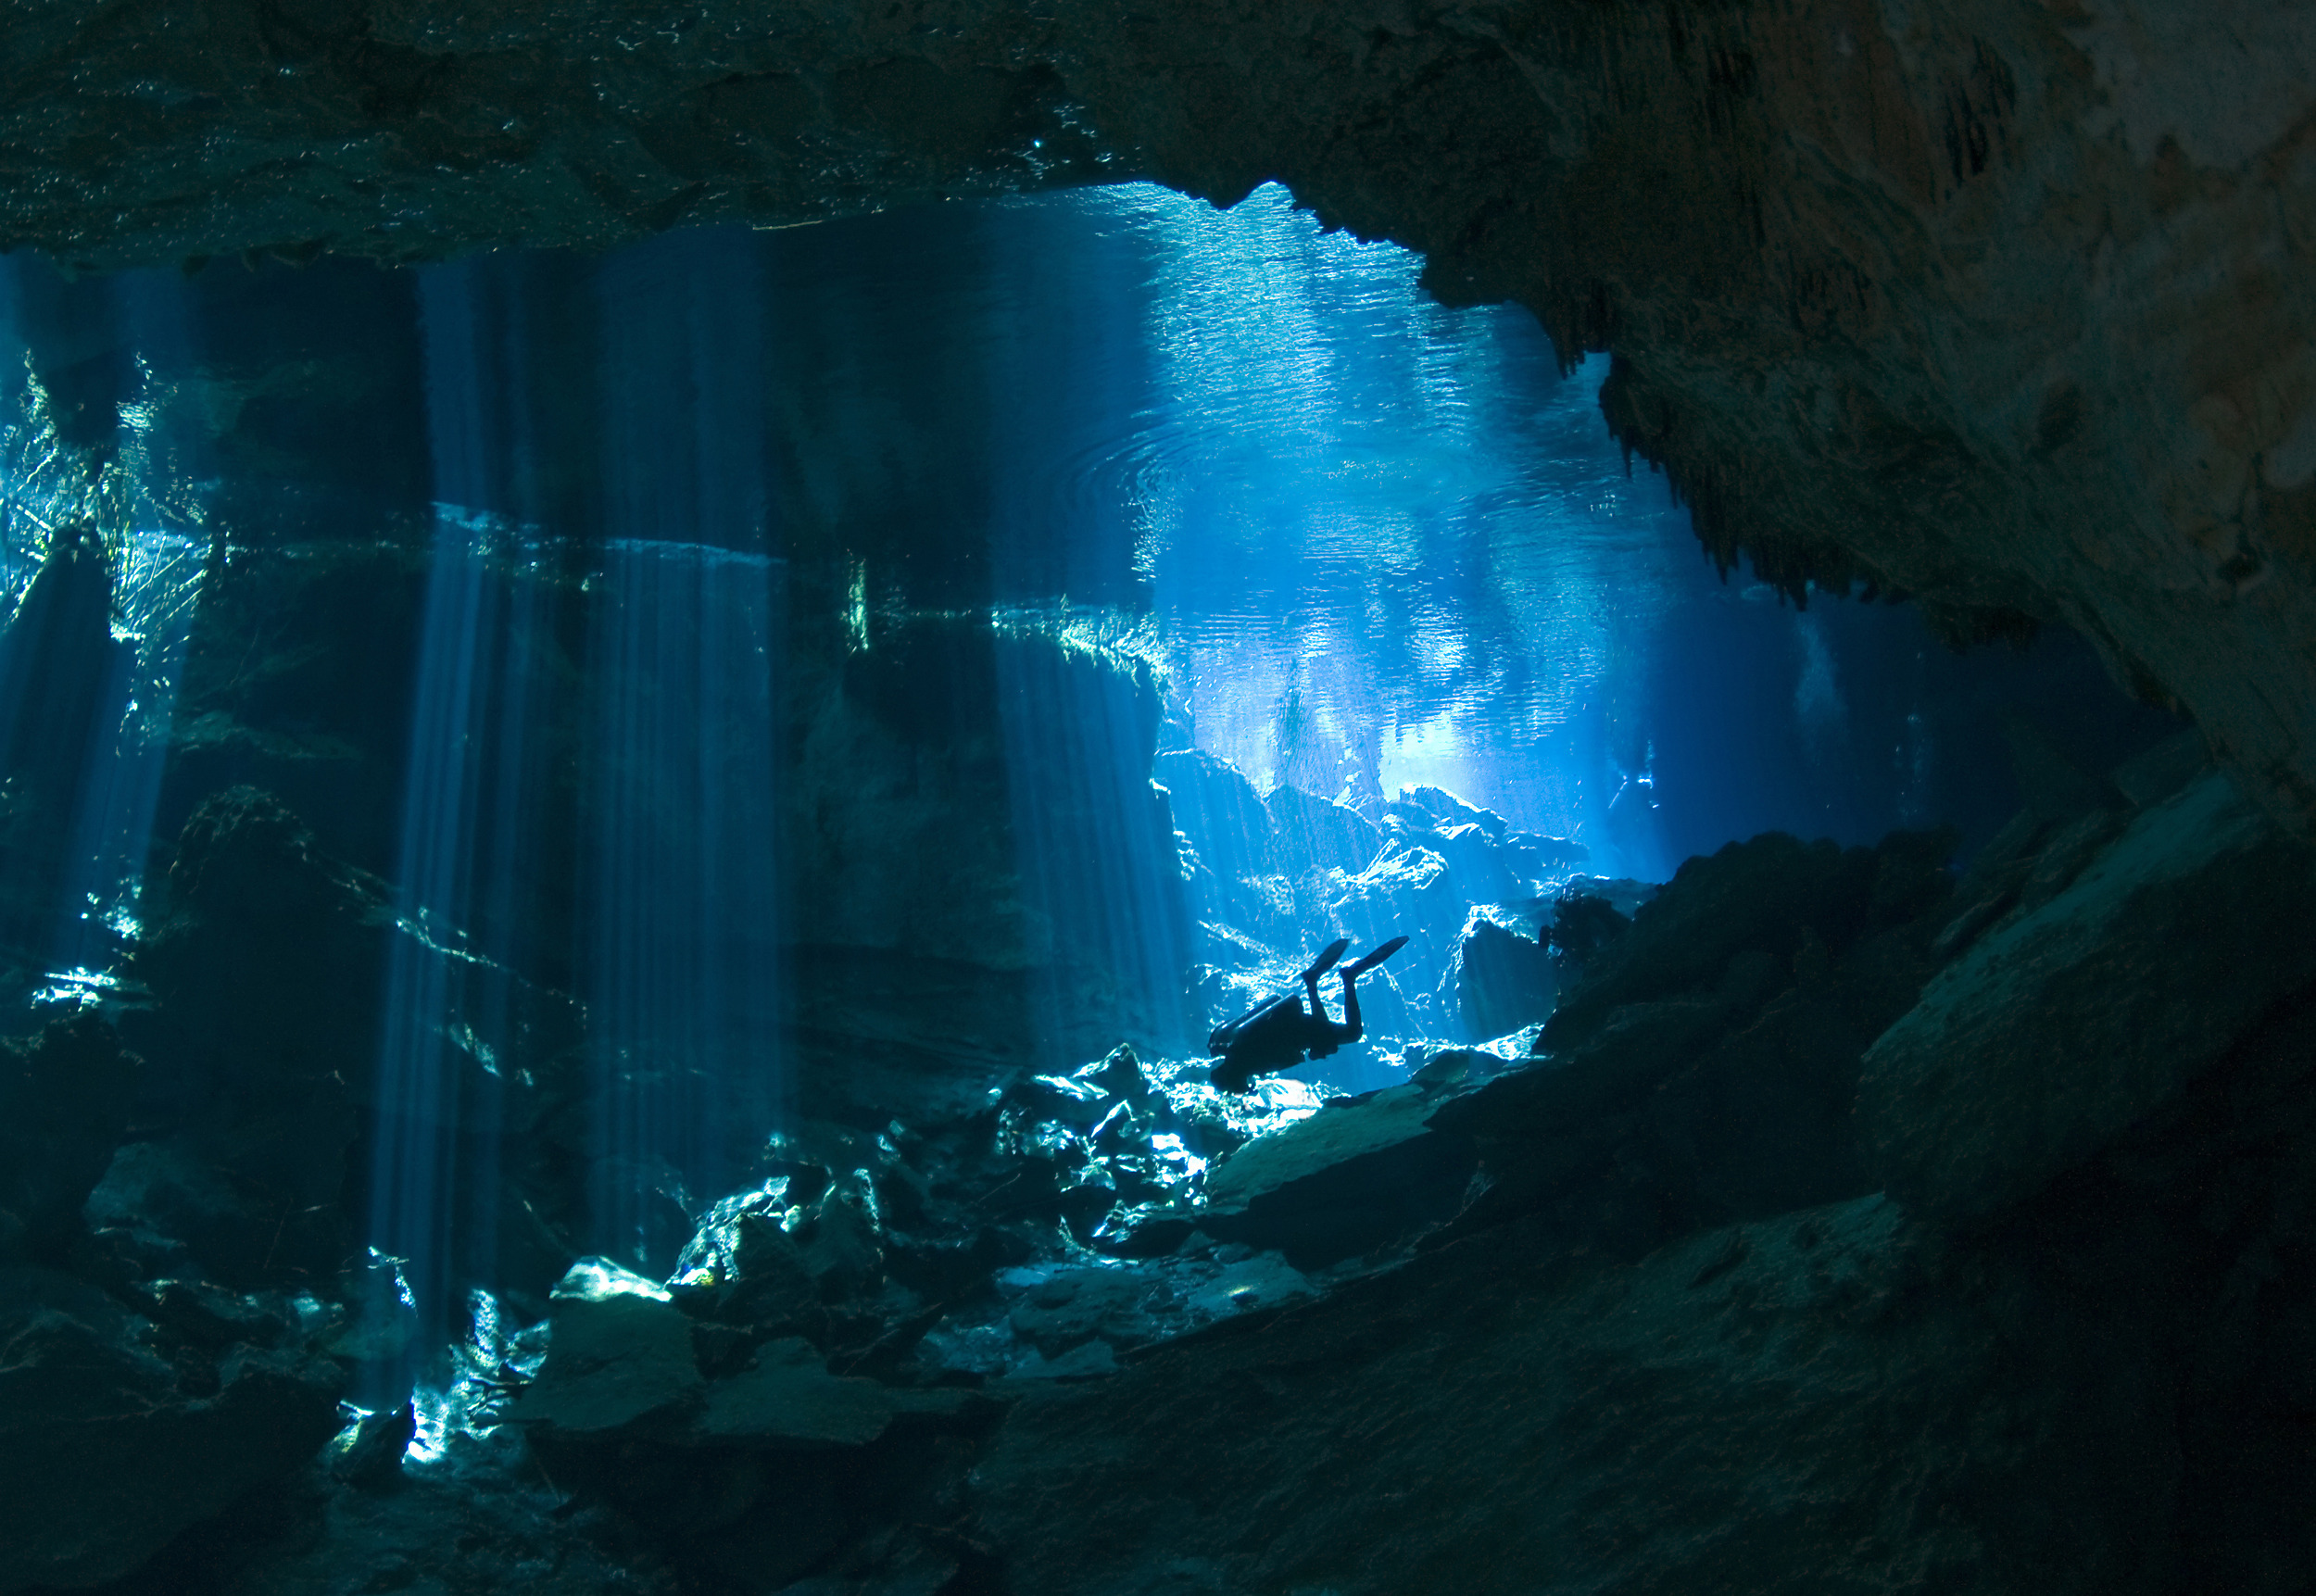 Quintana Roo boasts a number of famous cave systems, including the Chac Mool Cenote in the Riviera Maya.r